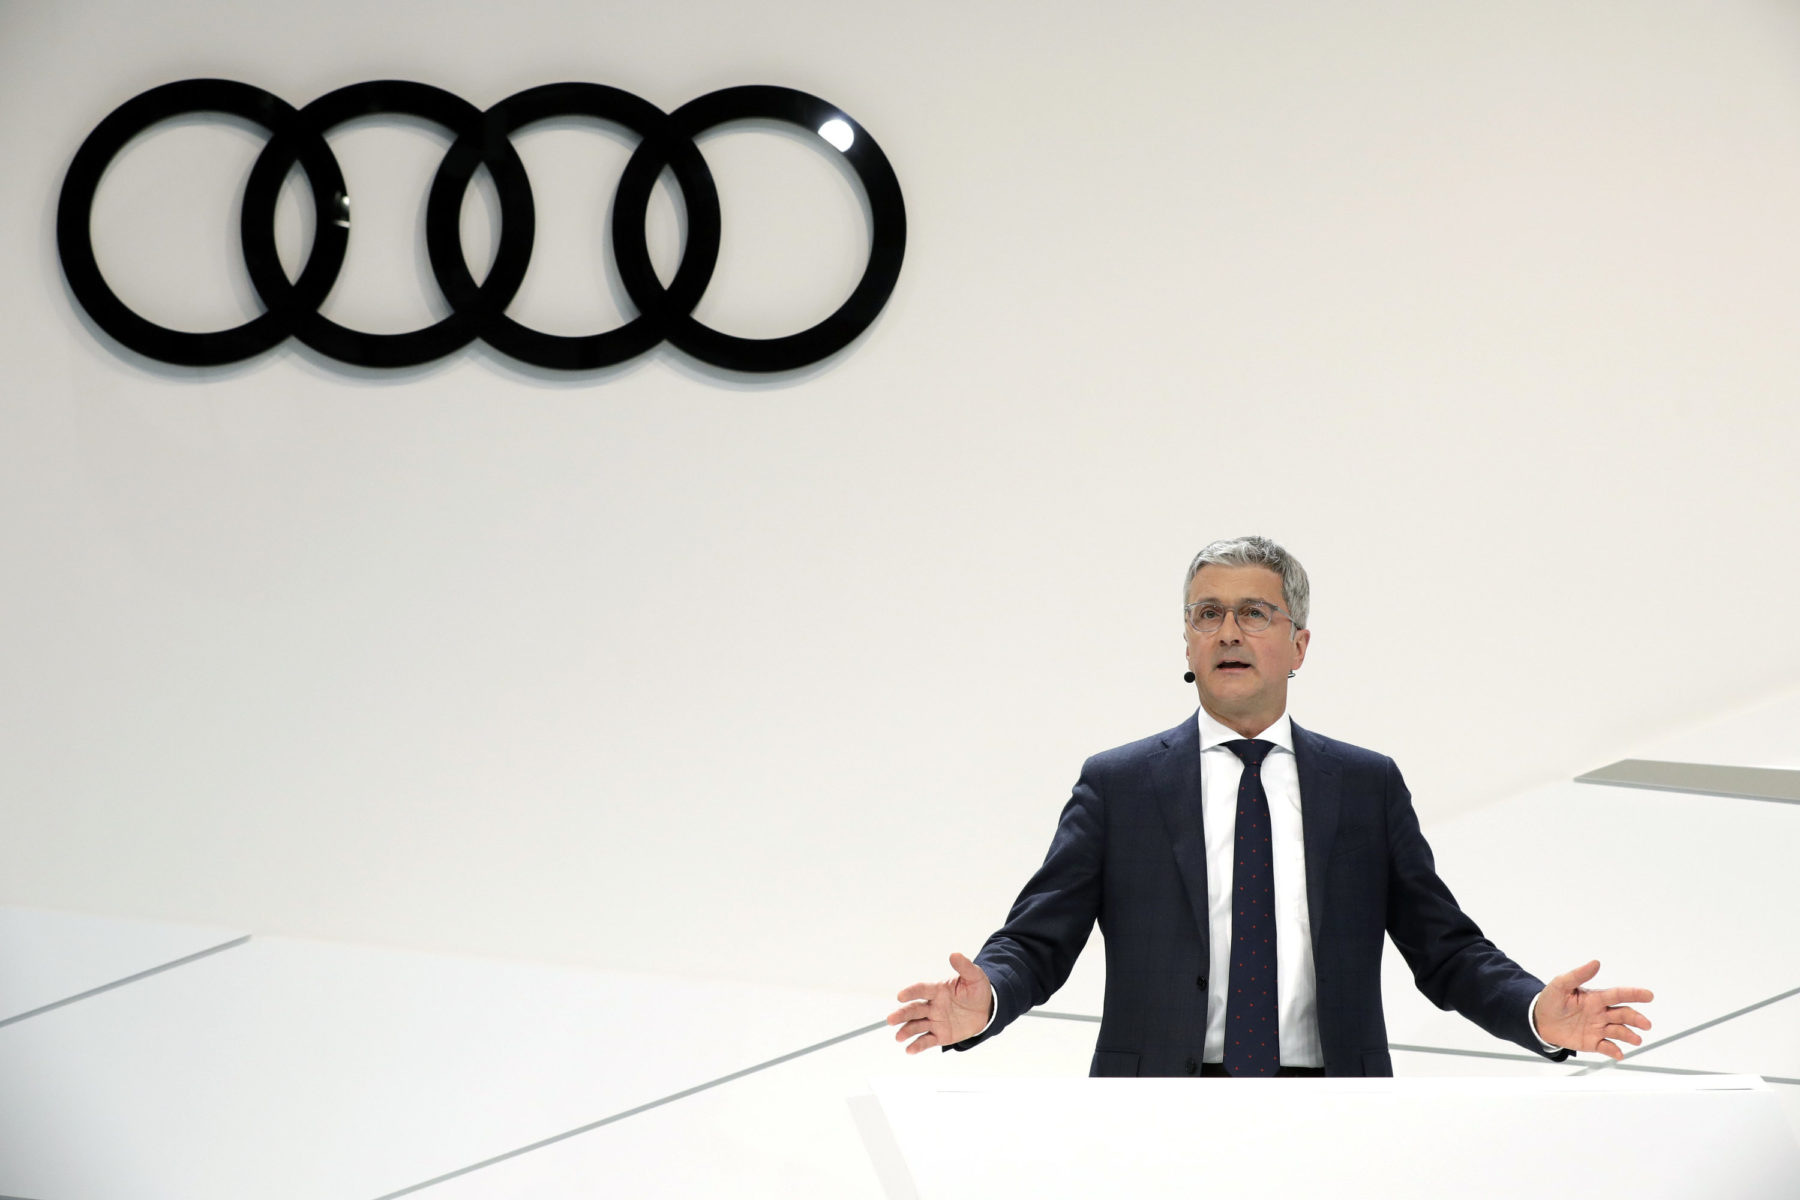 Former-Audi manager faces U.S. charges over VW diesel emissions